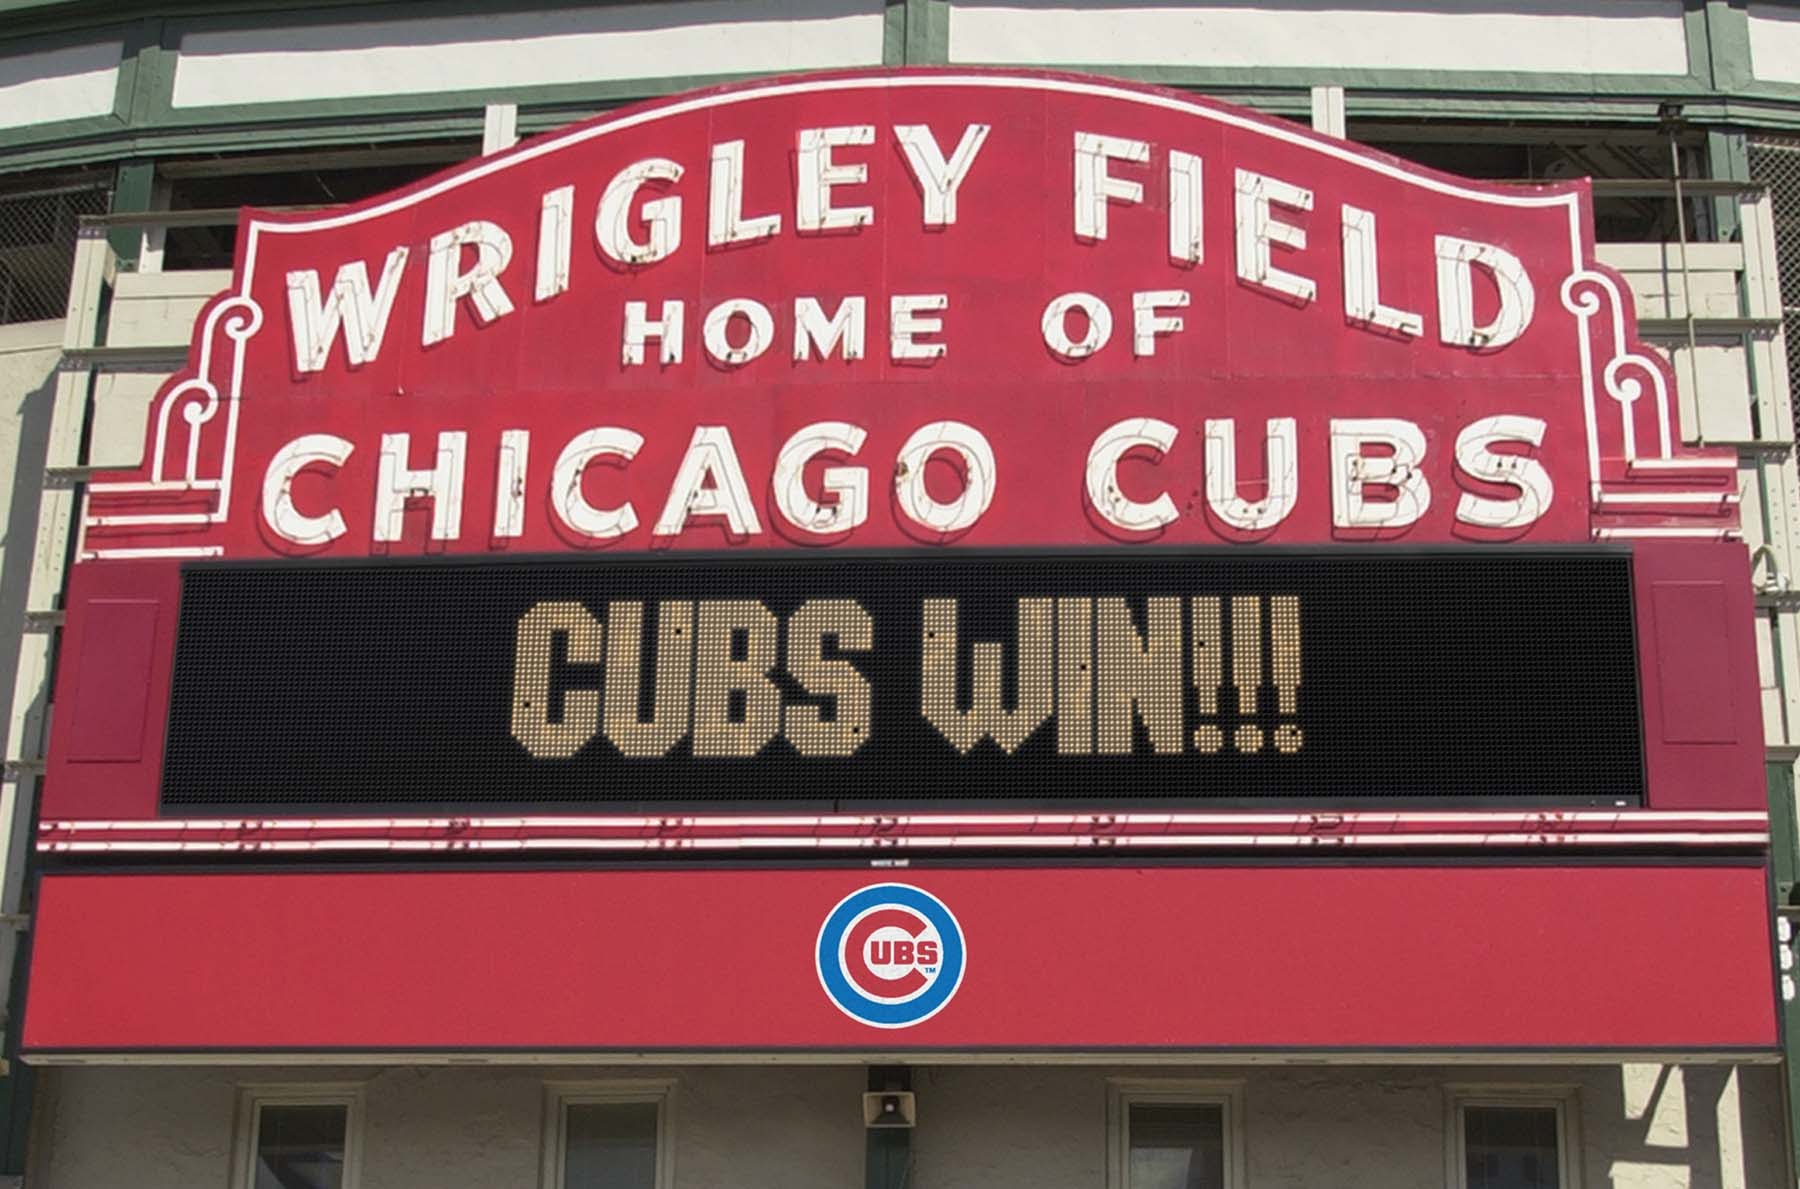 Chicago Cubs Win The World Series